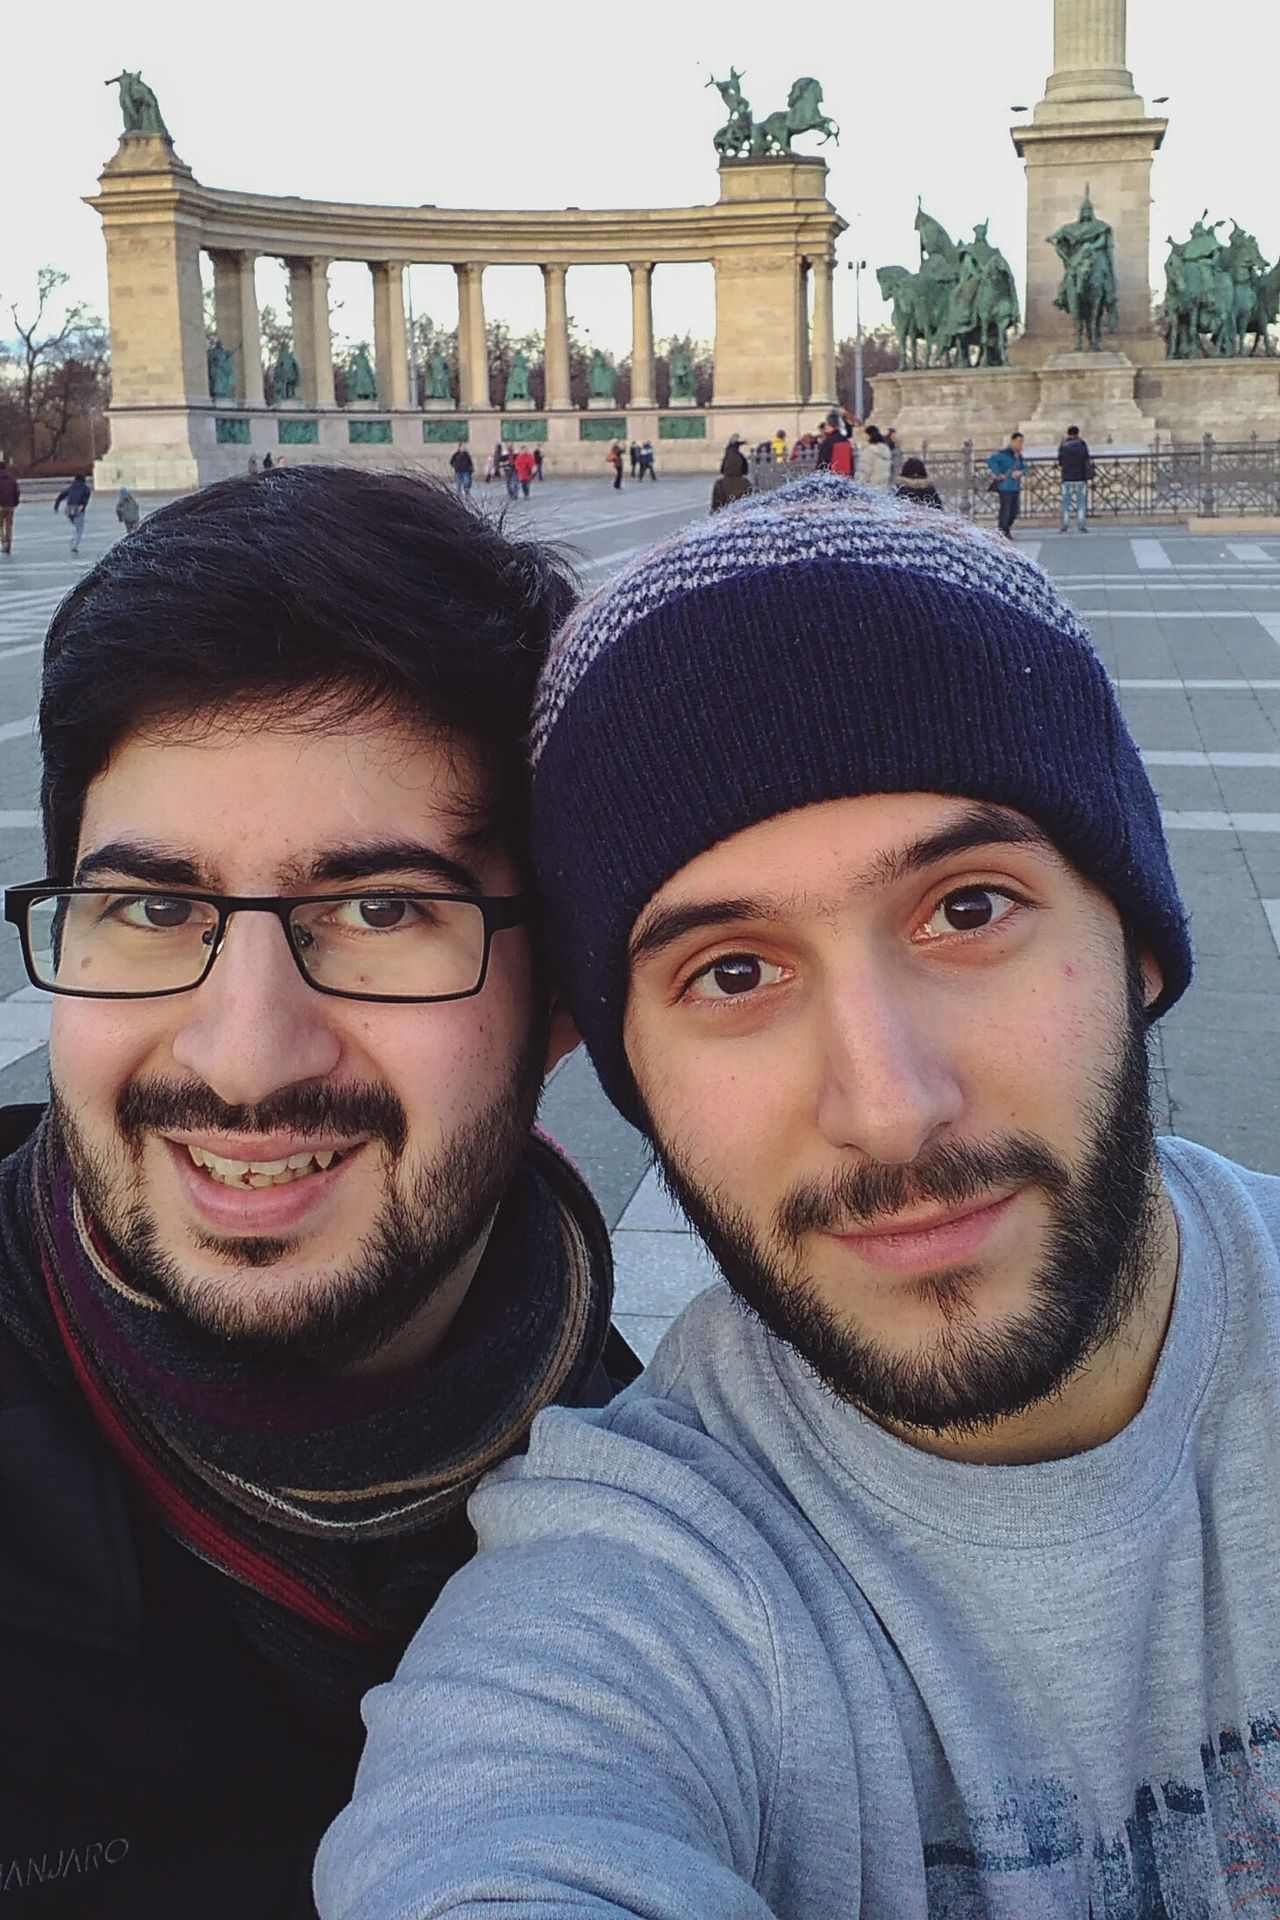 Bromance Brothers Selfie ✌ Travel City Budapest, Hungary Budapest Hungary Travel Destinations Me Beard